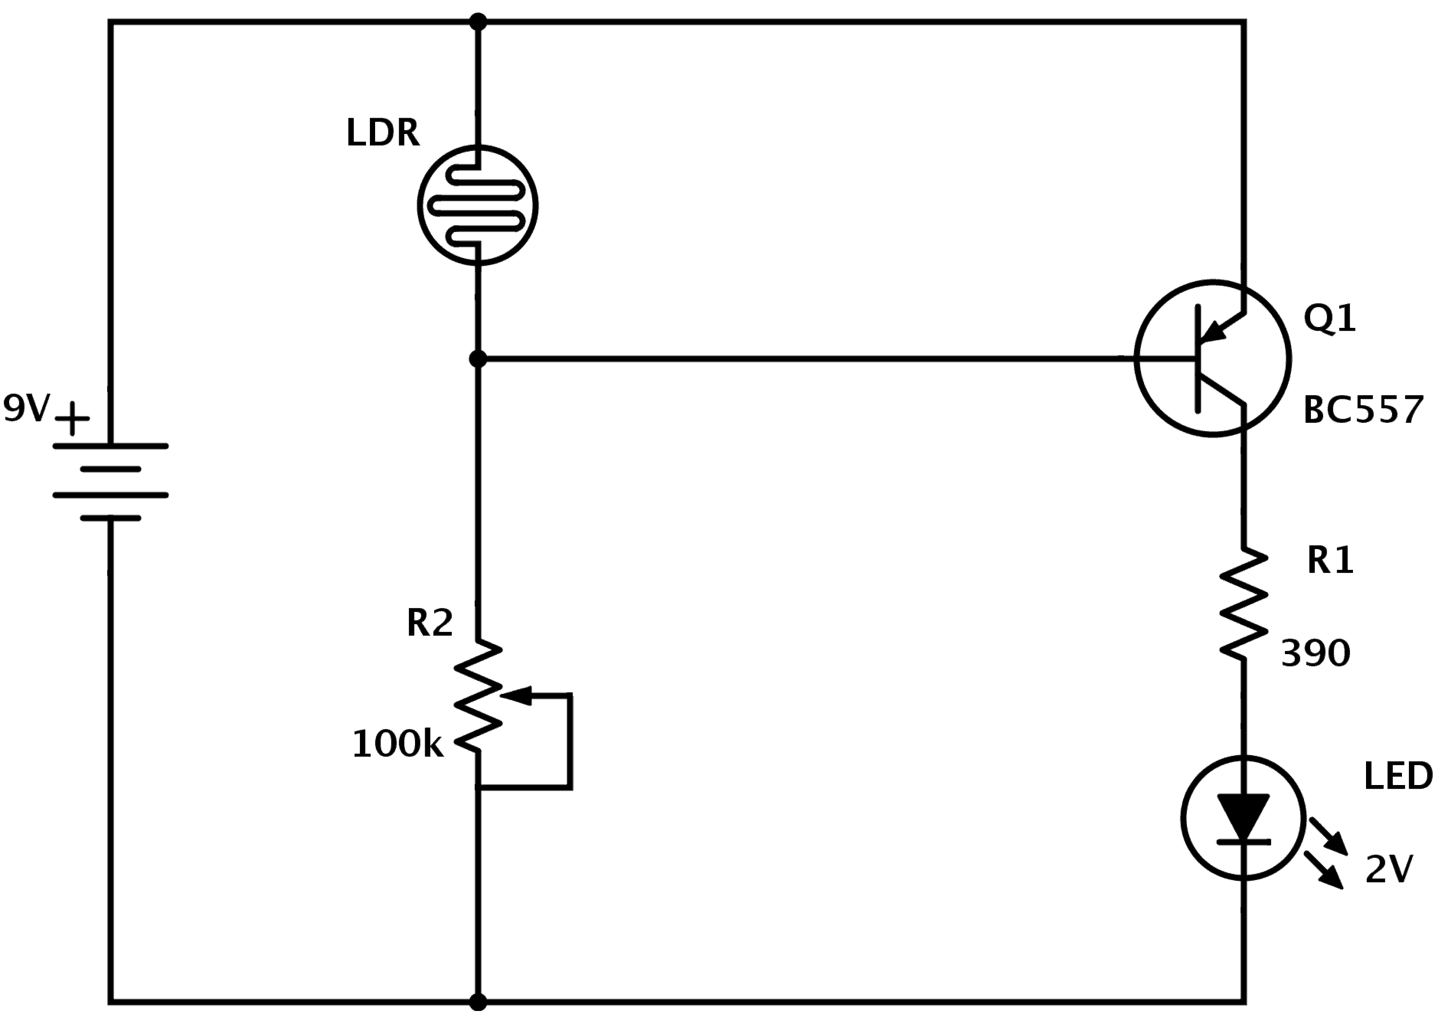 Wiring Example #2: Strange Connection